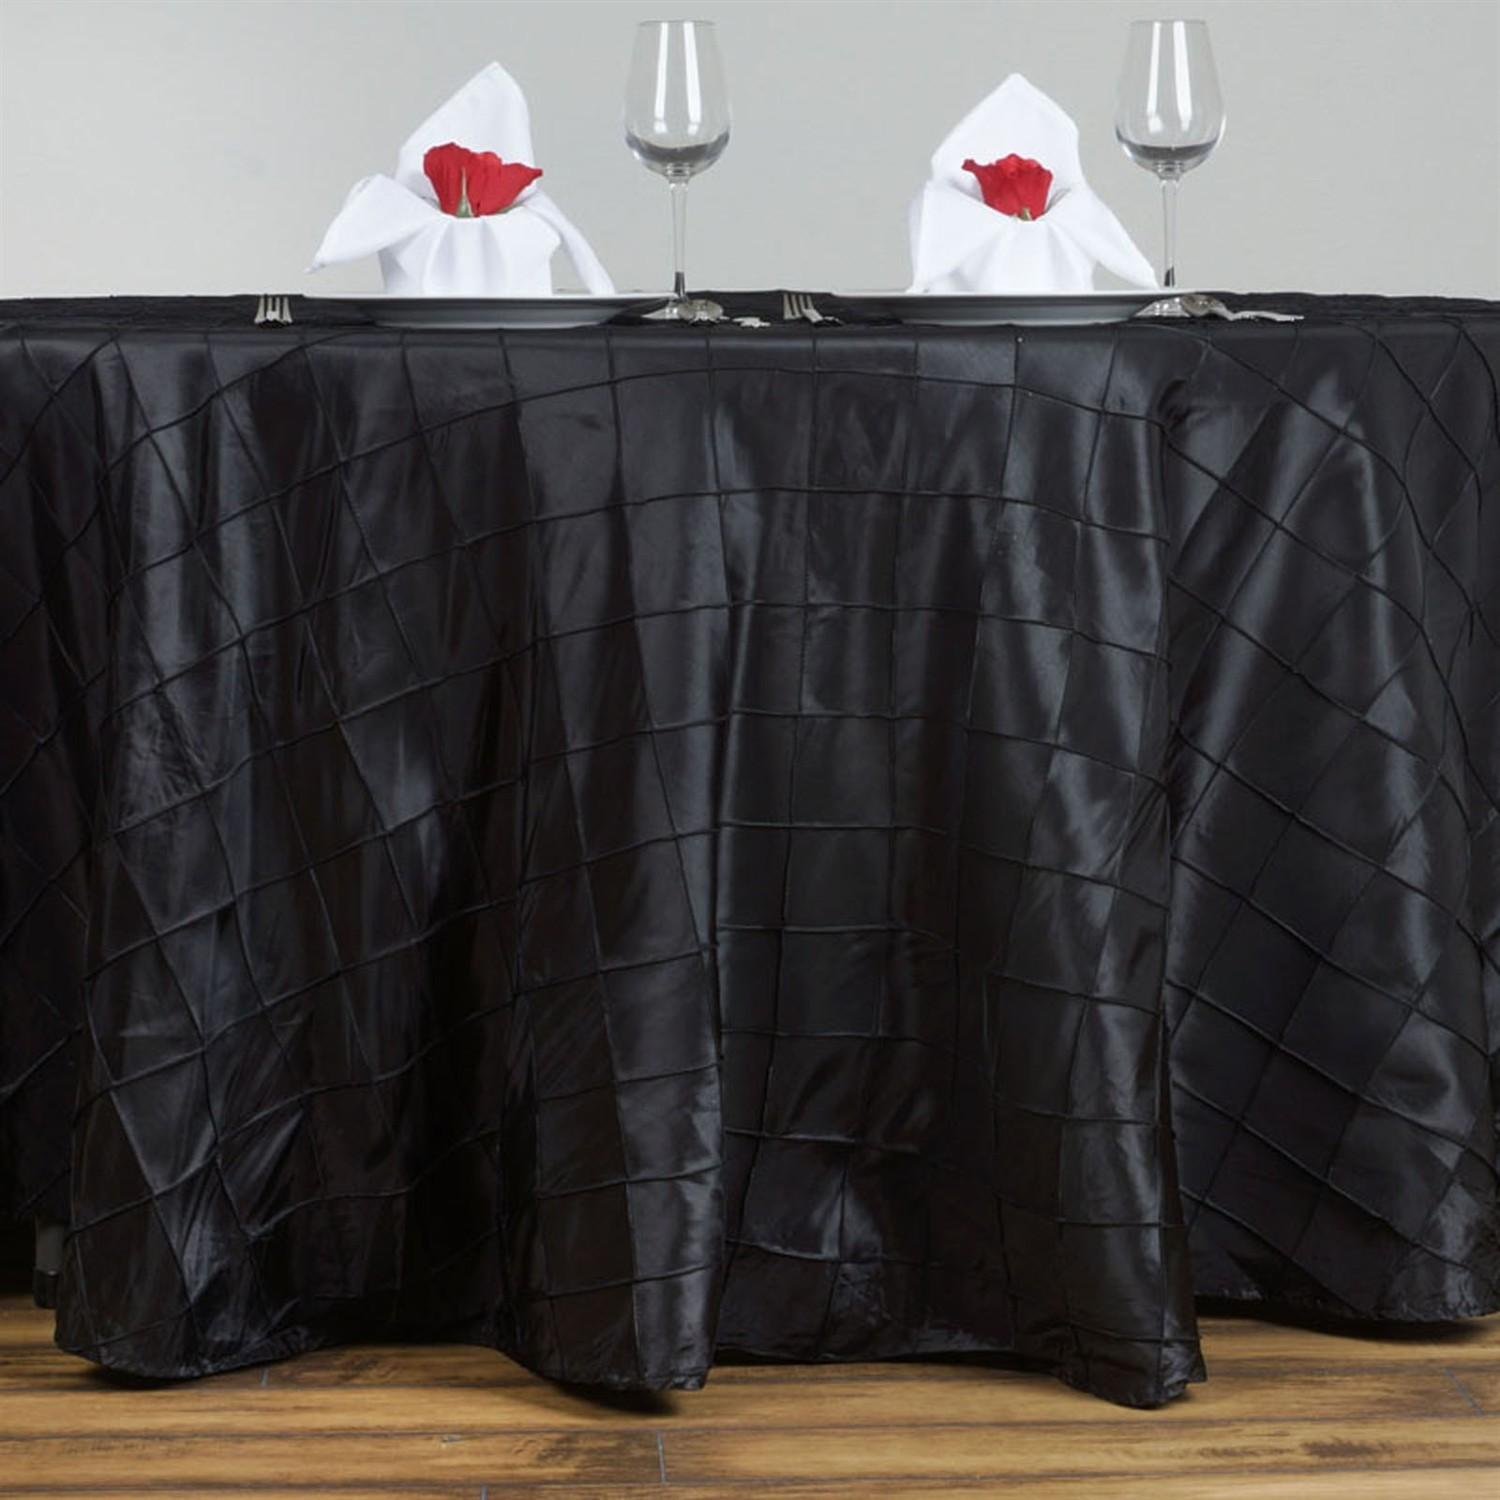 120 Pintuck Round Tablecloth Wedding Party Banquet